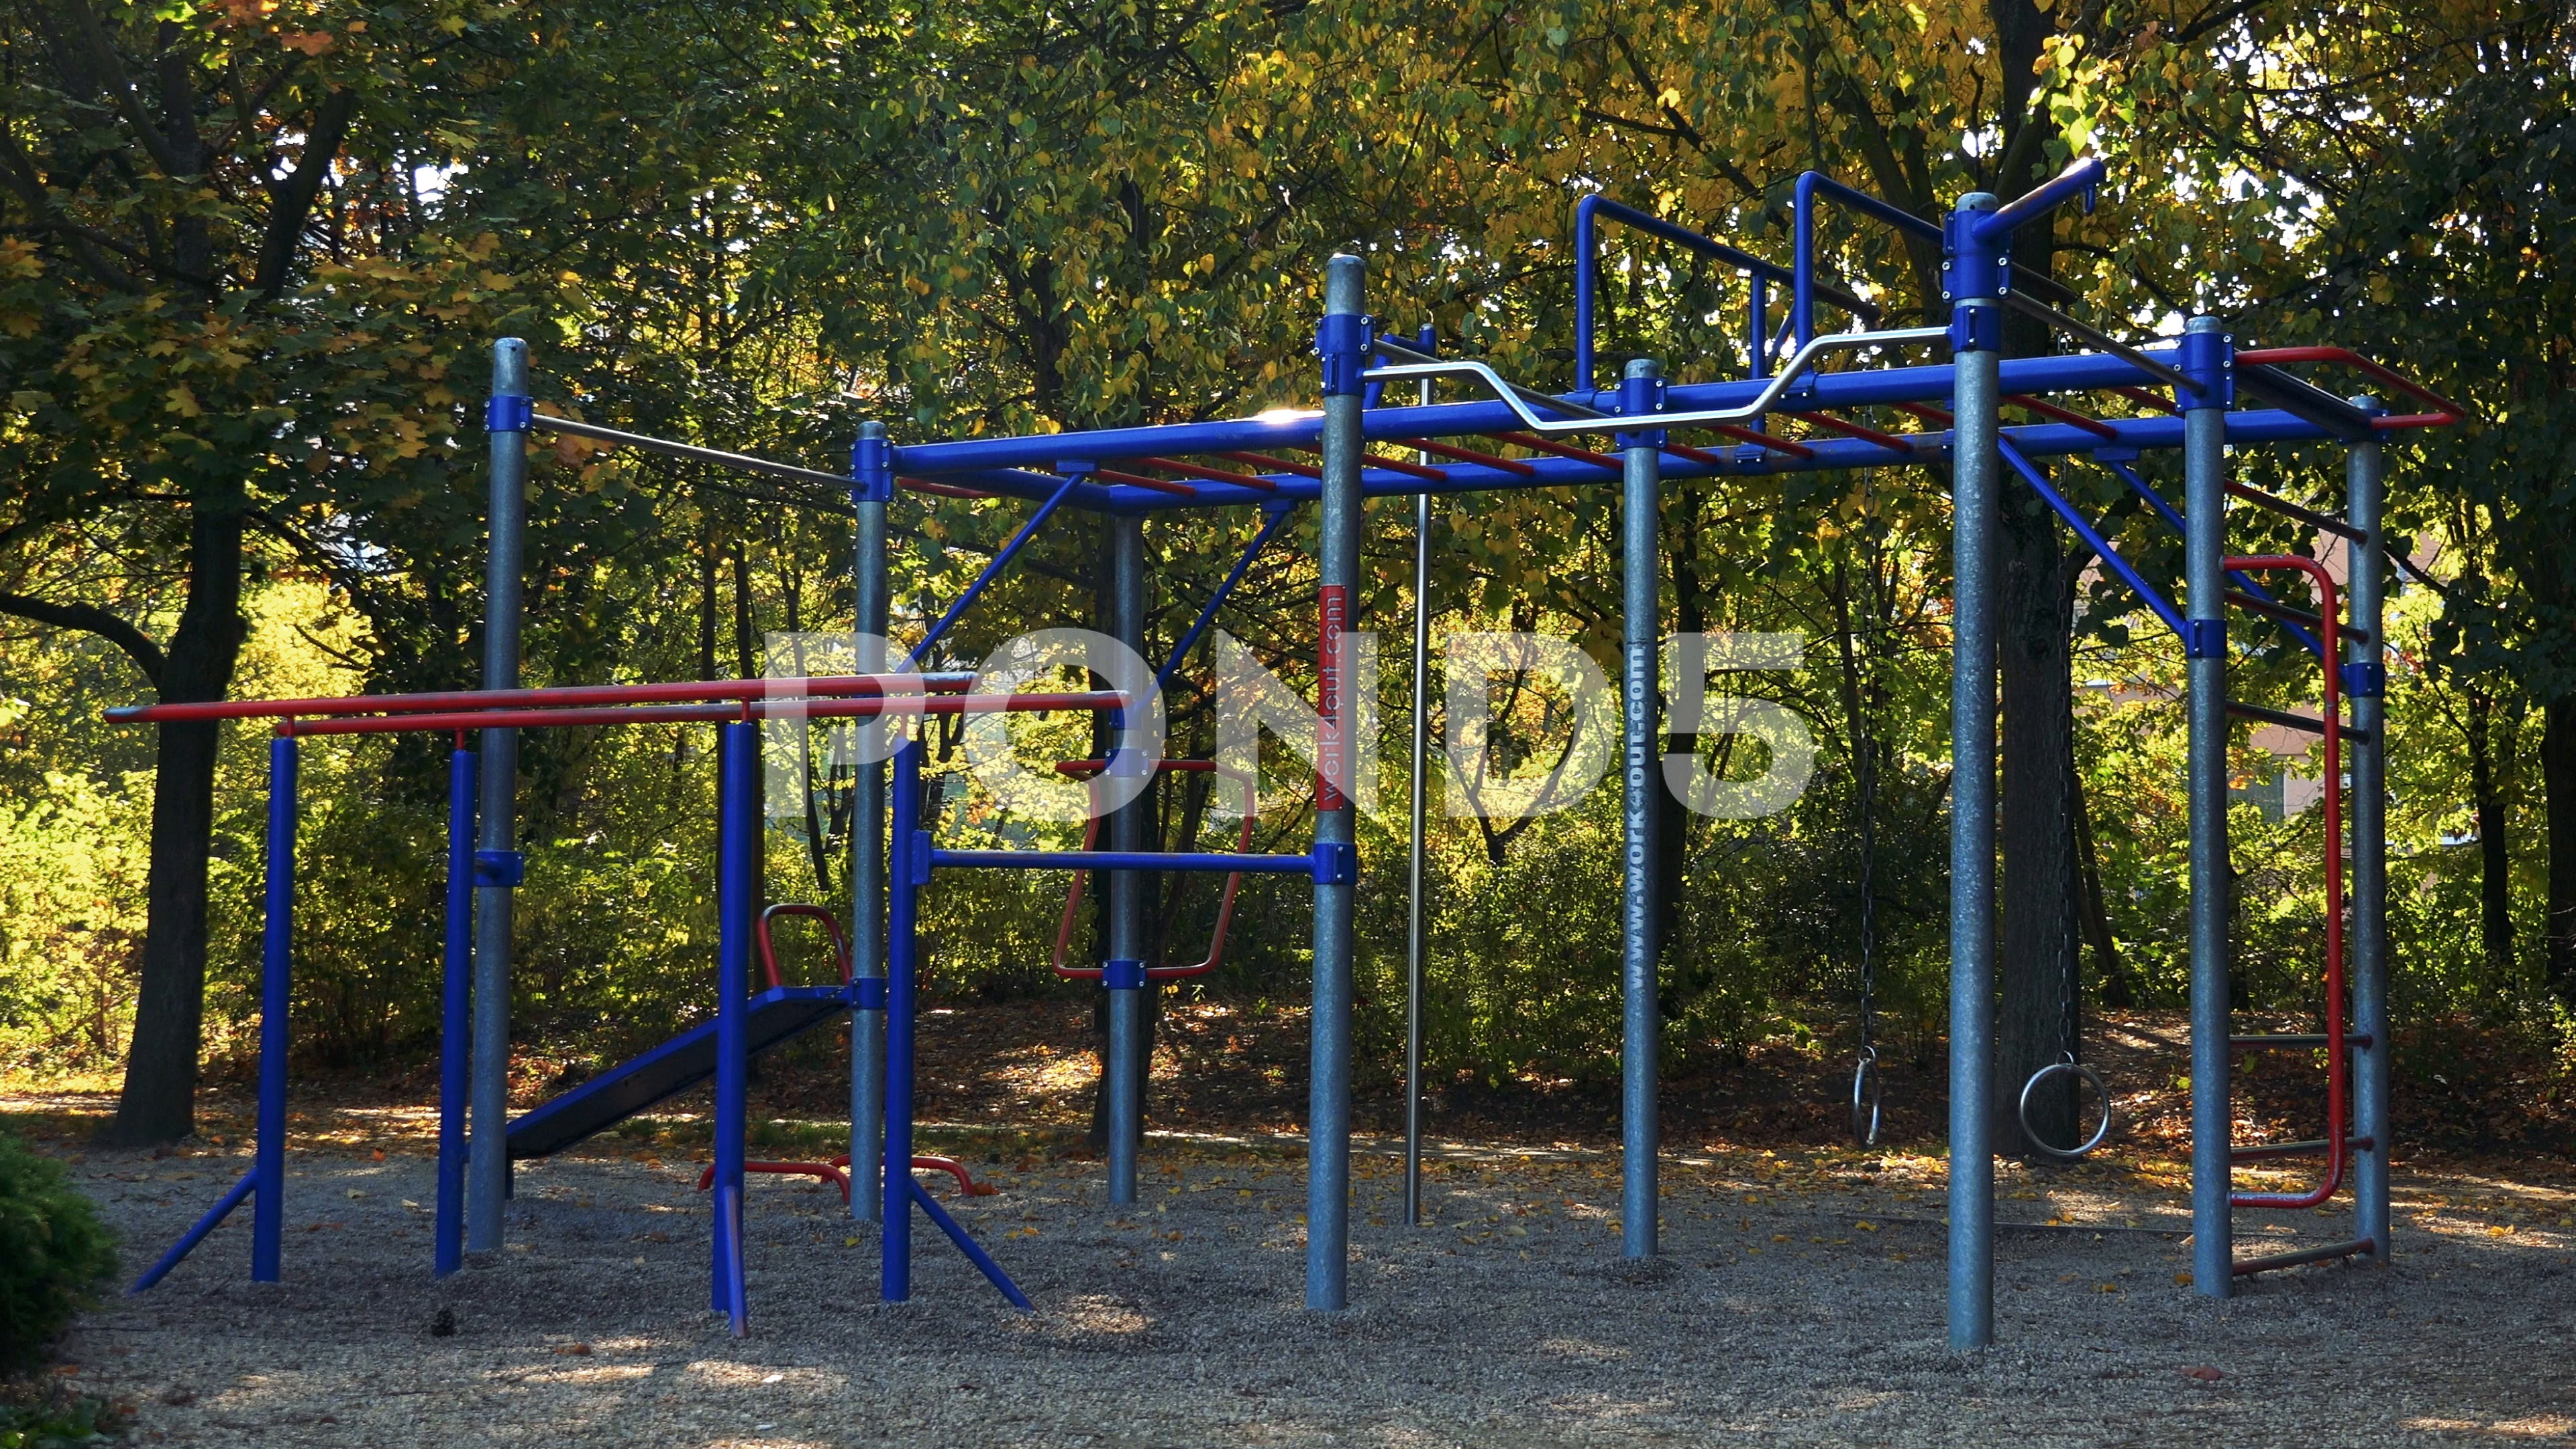 Video A calisthenics outdoor gym   trees in the background 3840x2160